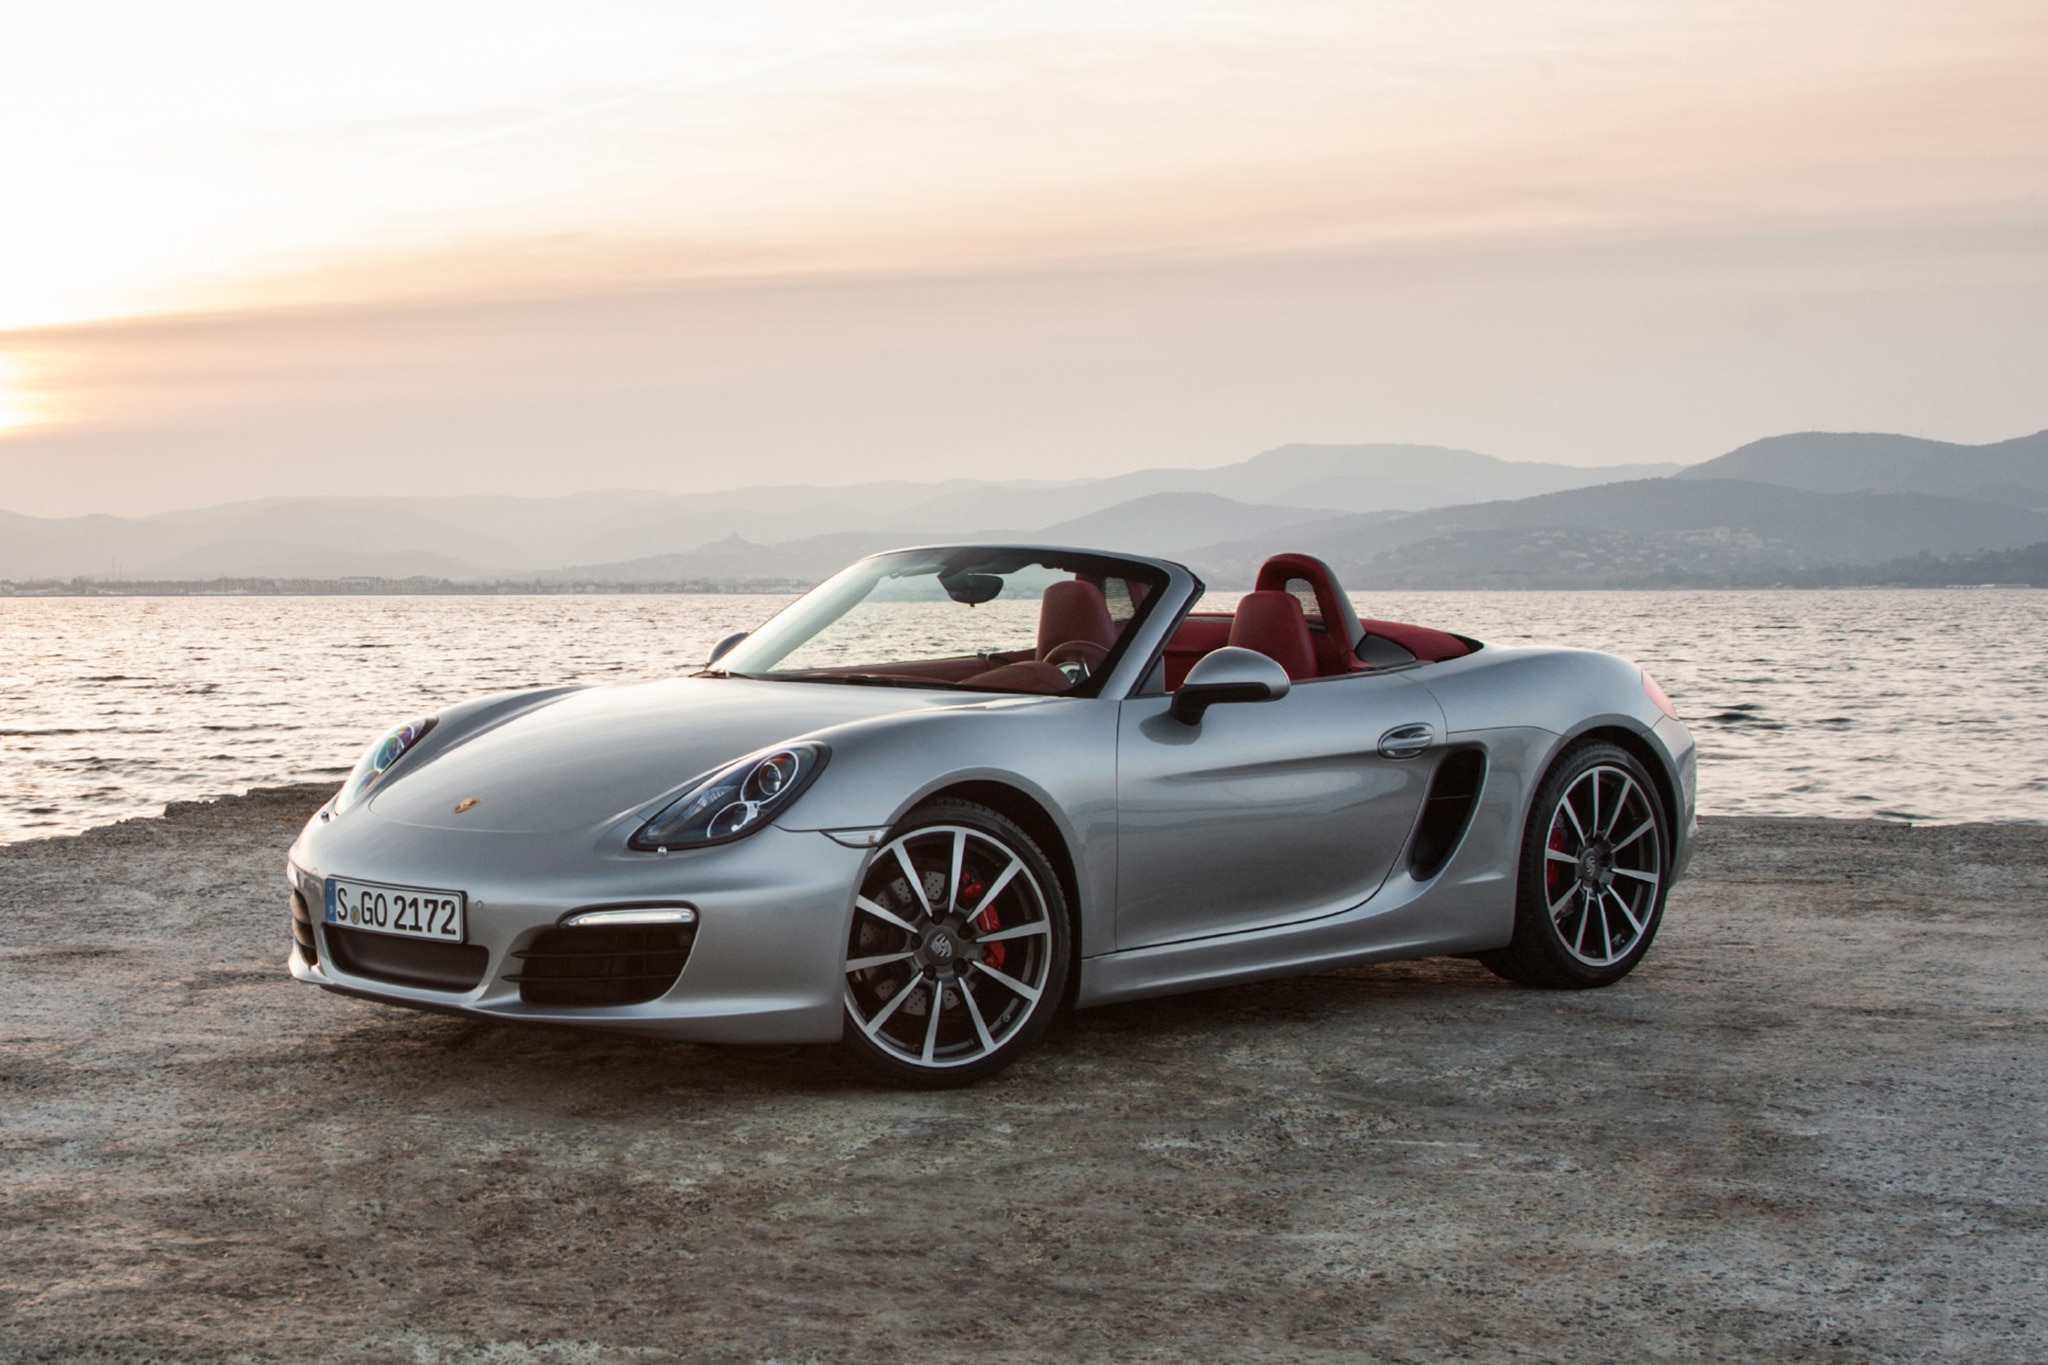 Roadster Roundup: Porsche Boxster S vs. Mercedes-Benz ...